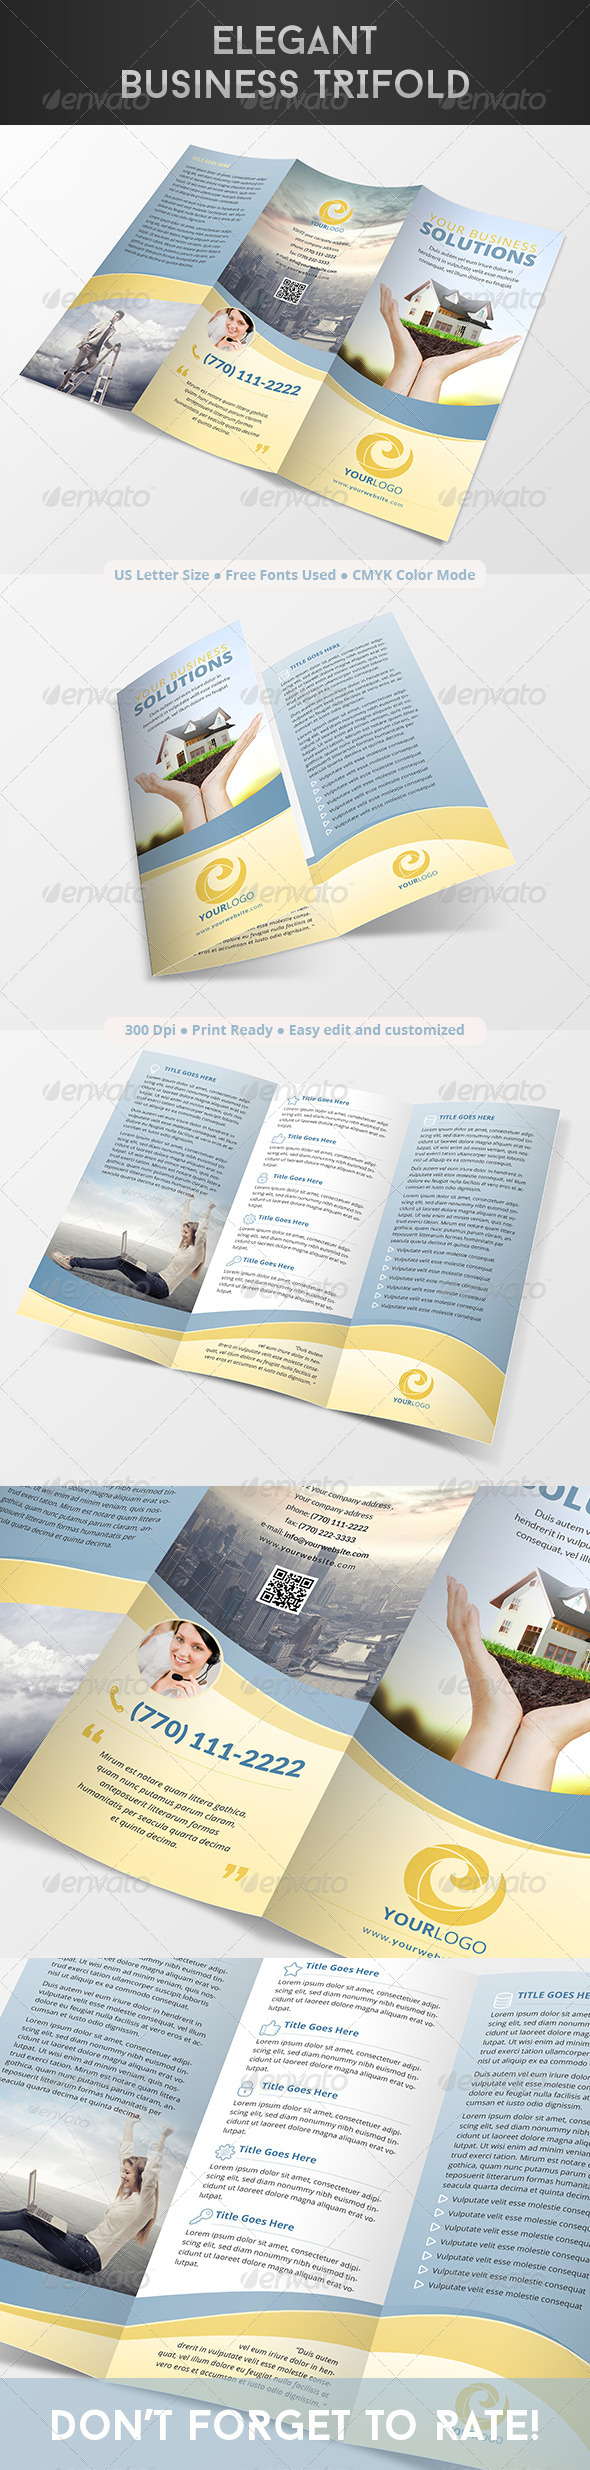 GraphicRiver Elegant Business Trifold 8252383